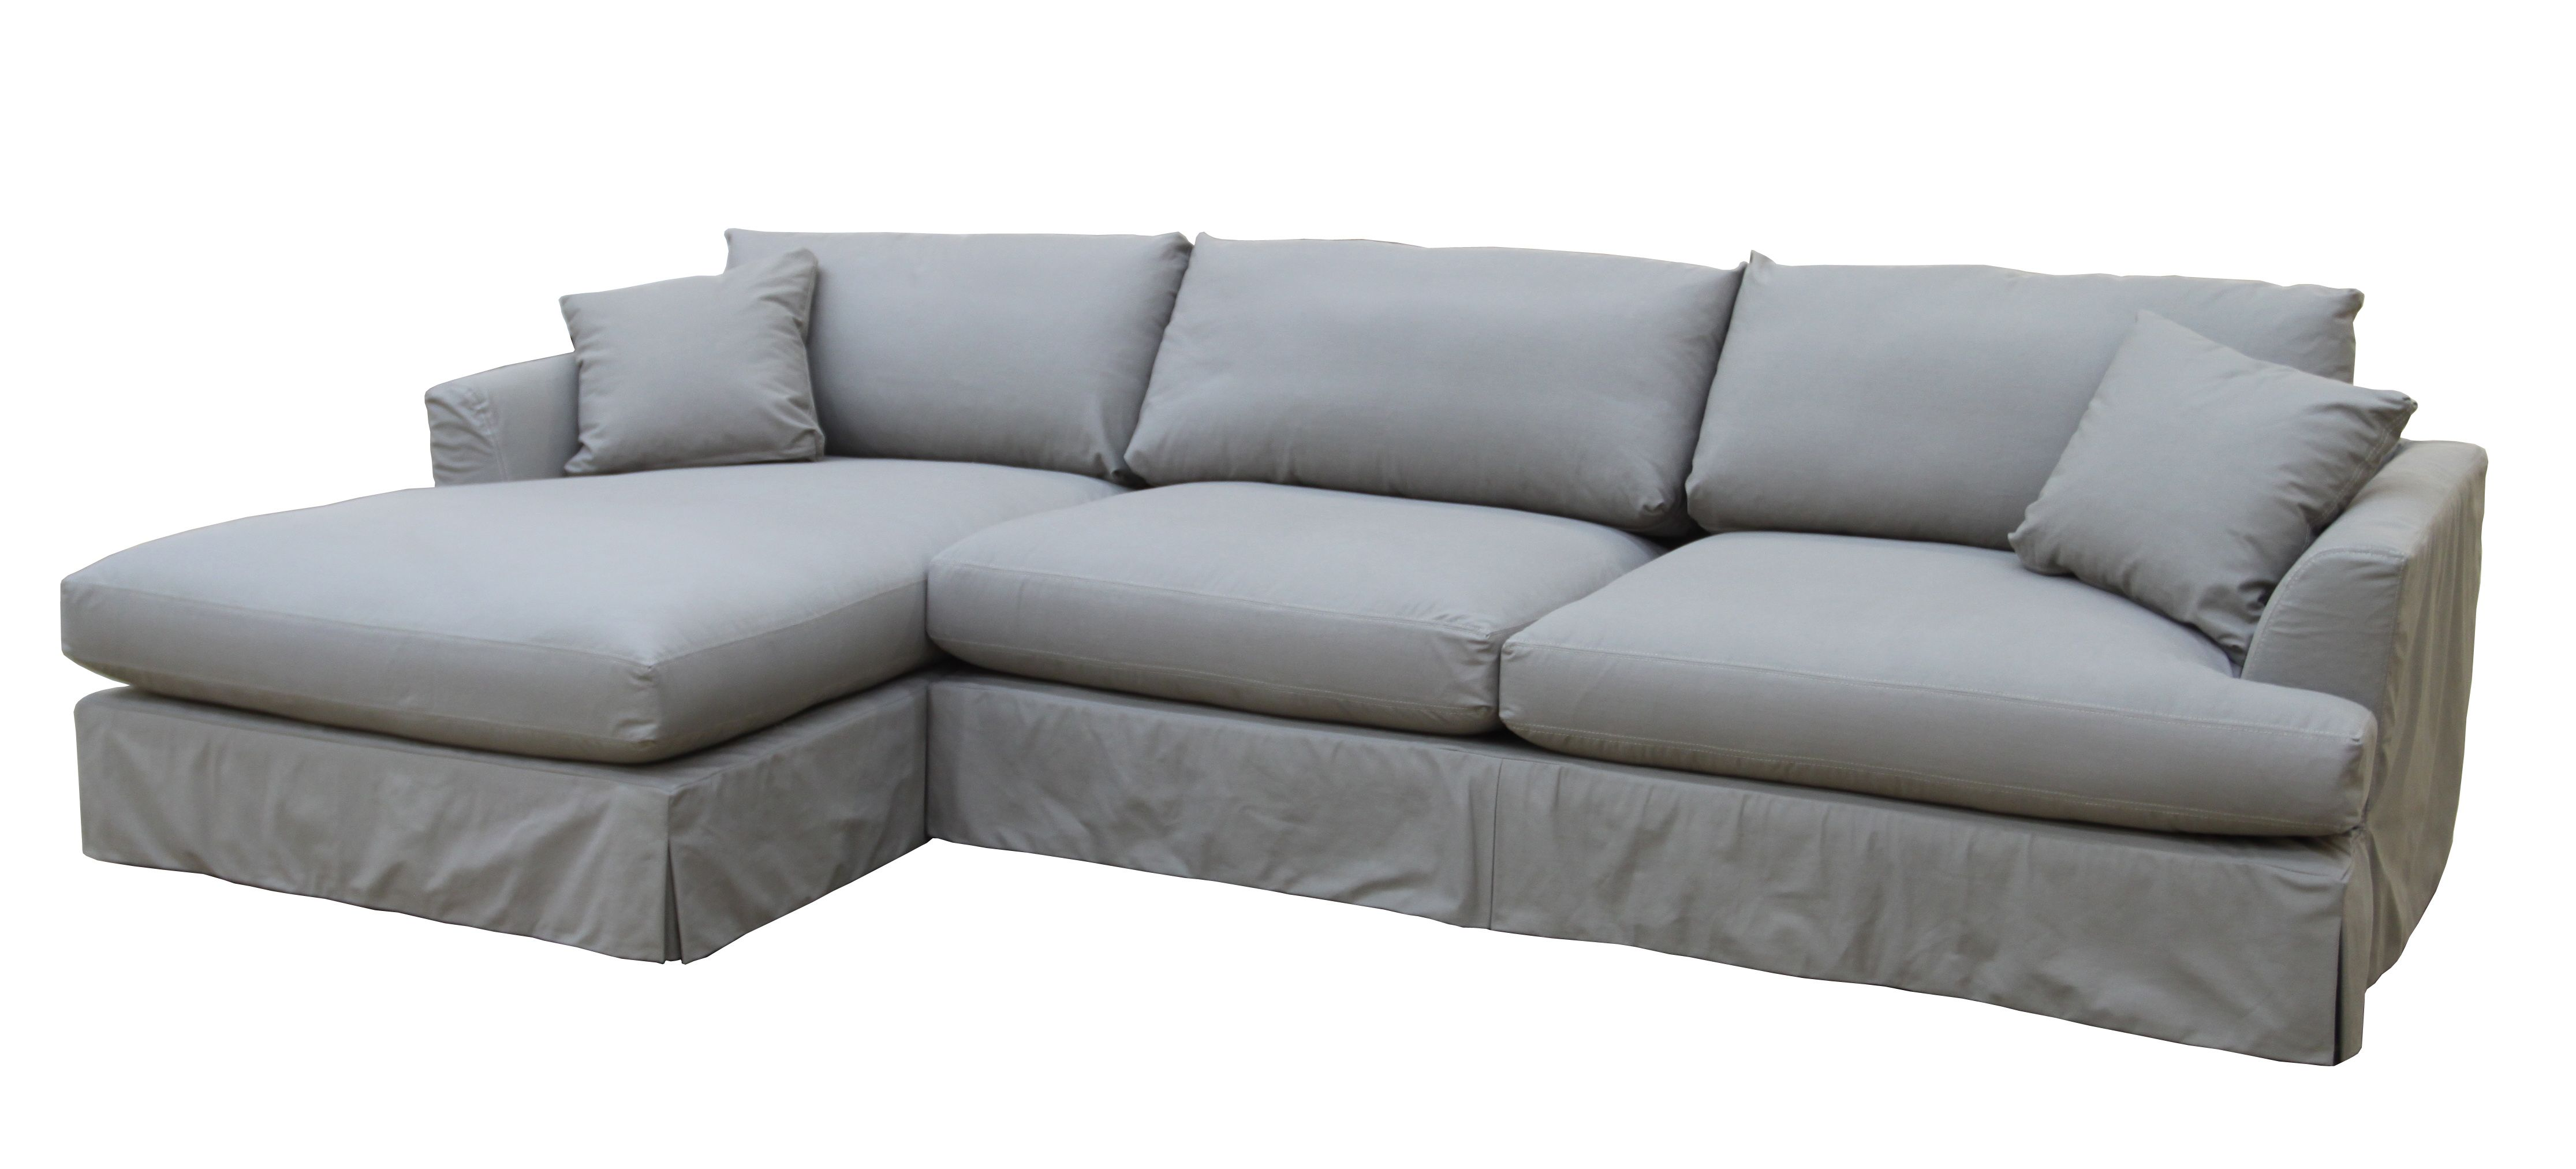 Diamond Head Sectional At Home Furniture Store Sectional Comfy Couch